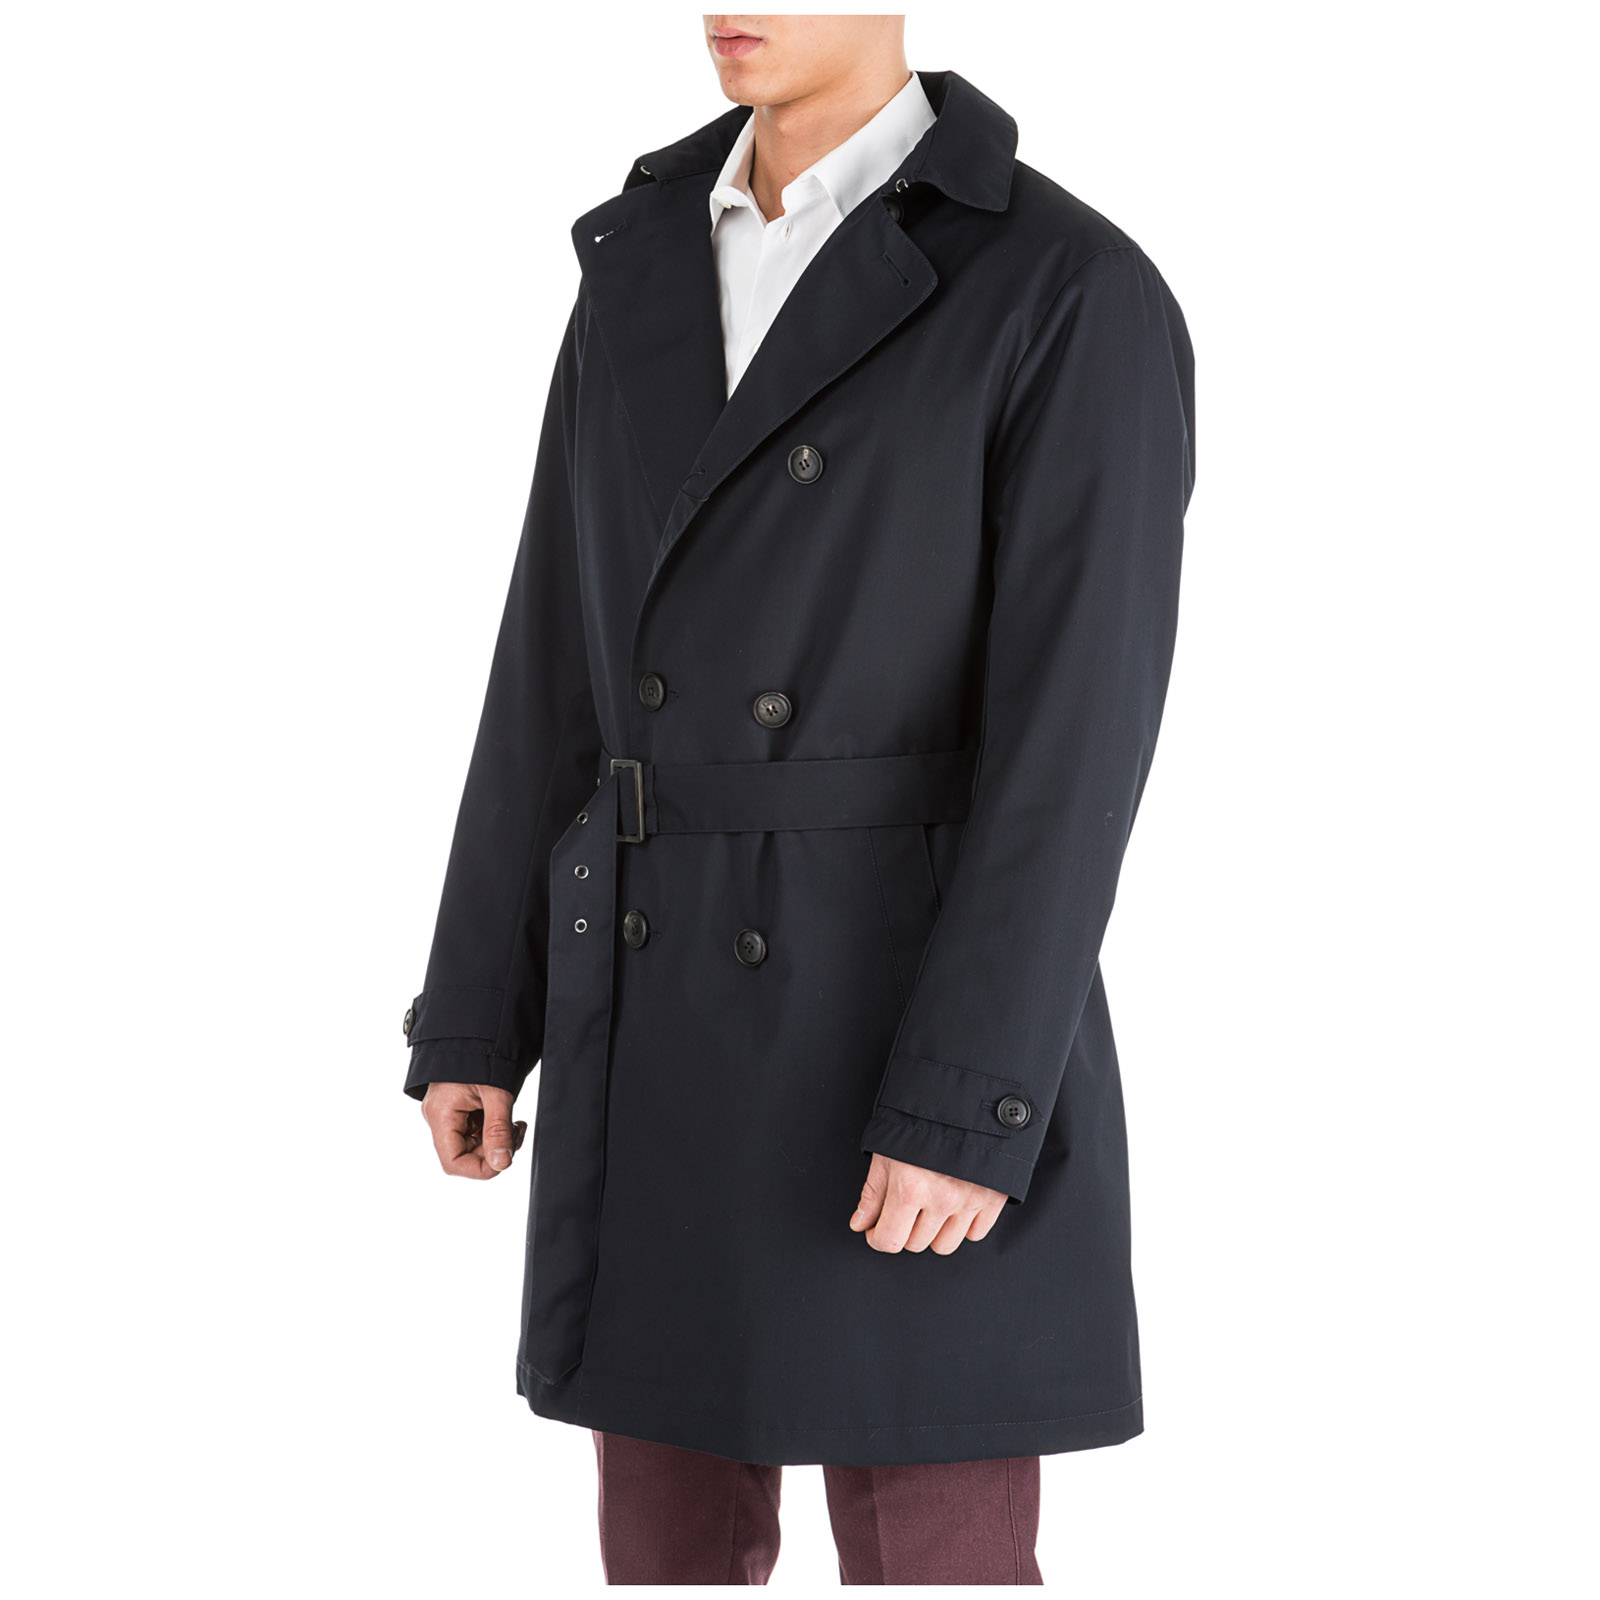 finest selection 0b244 bb86f Cappotto uomo